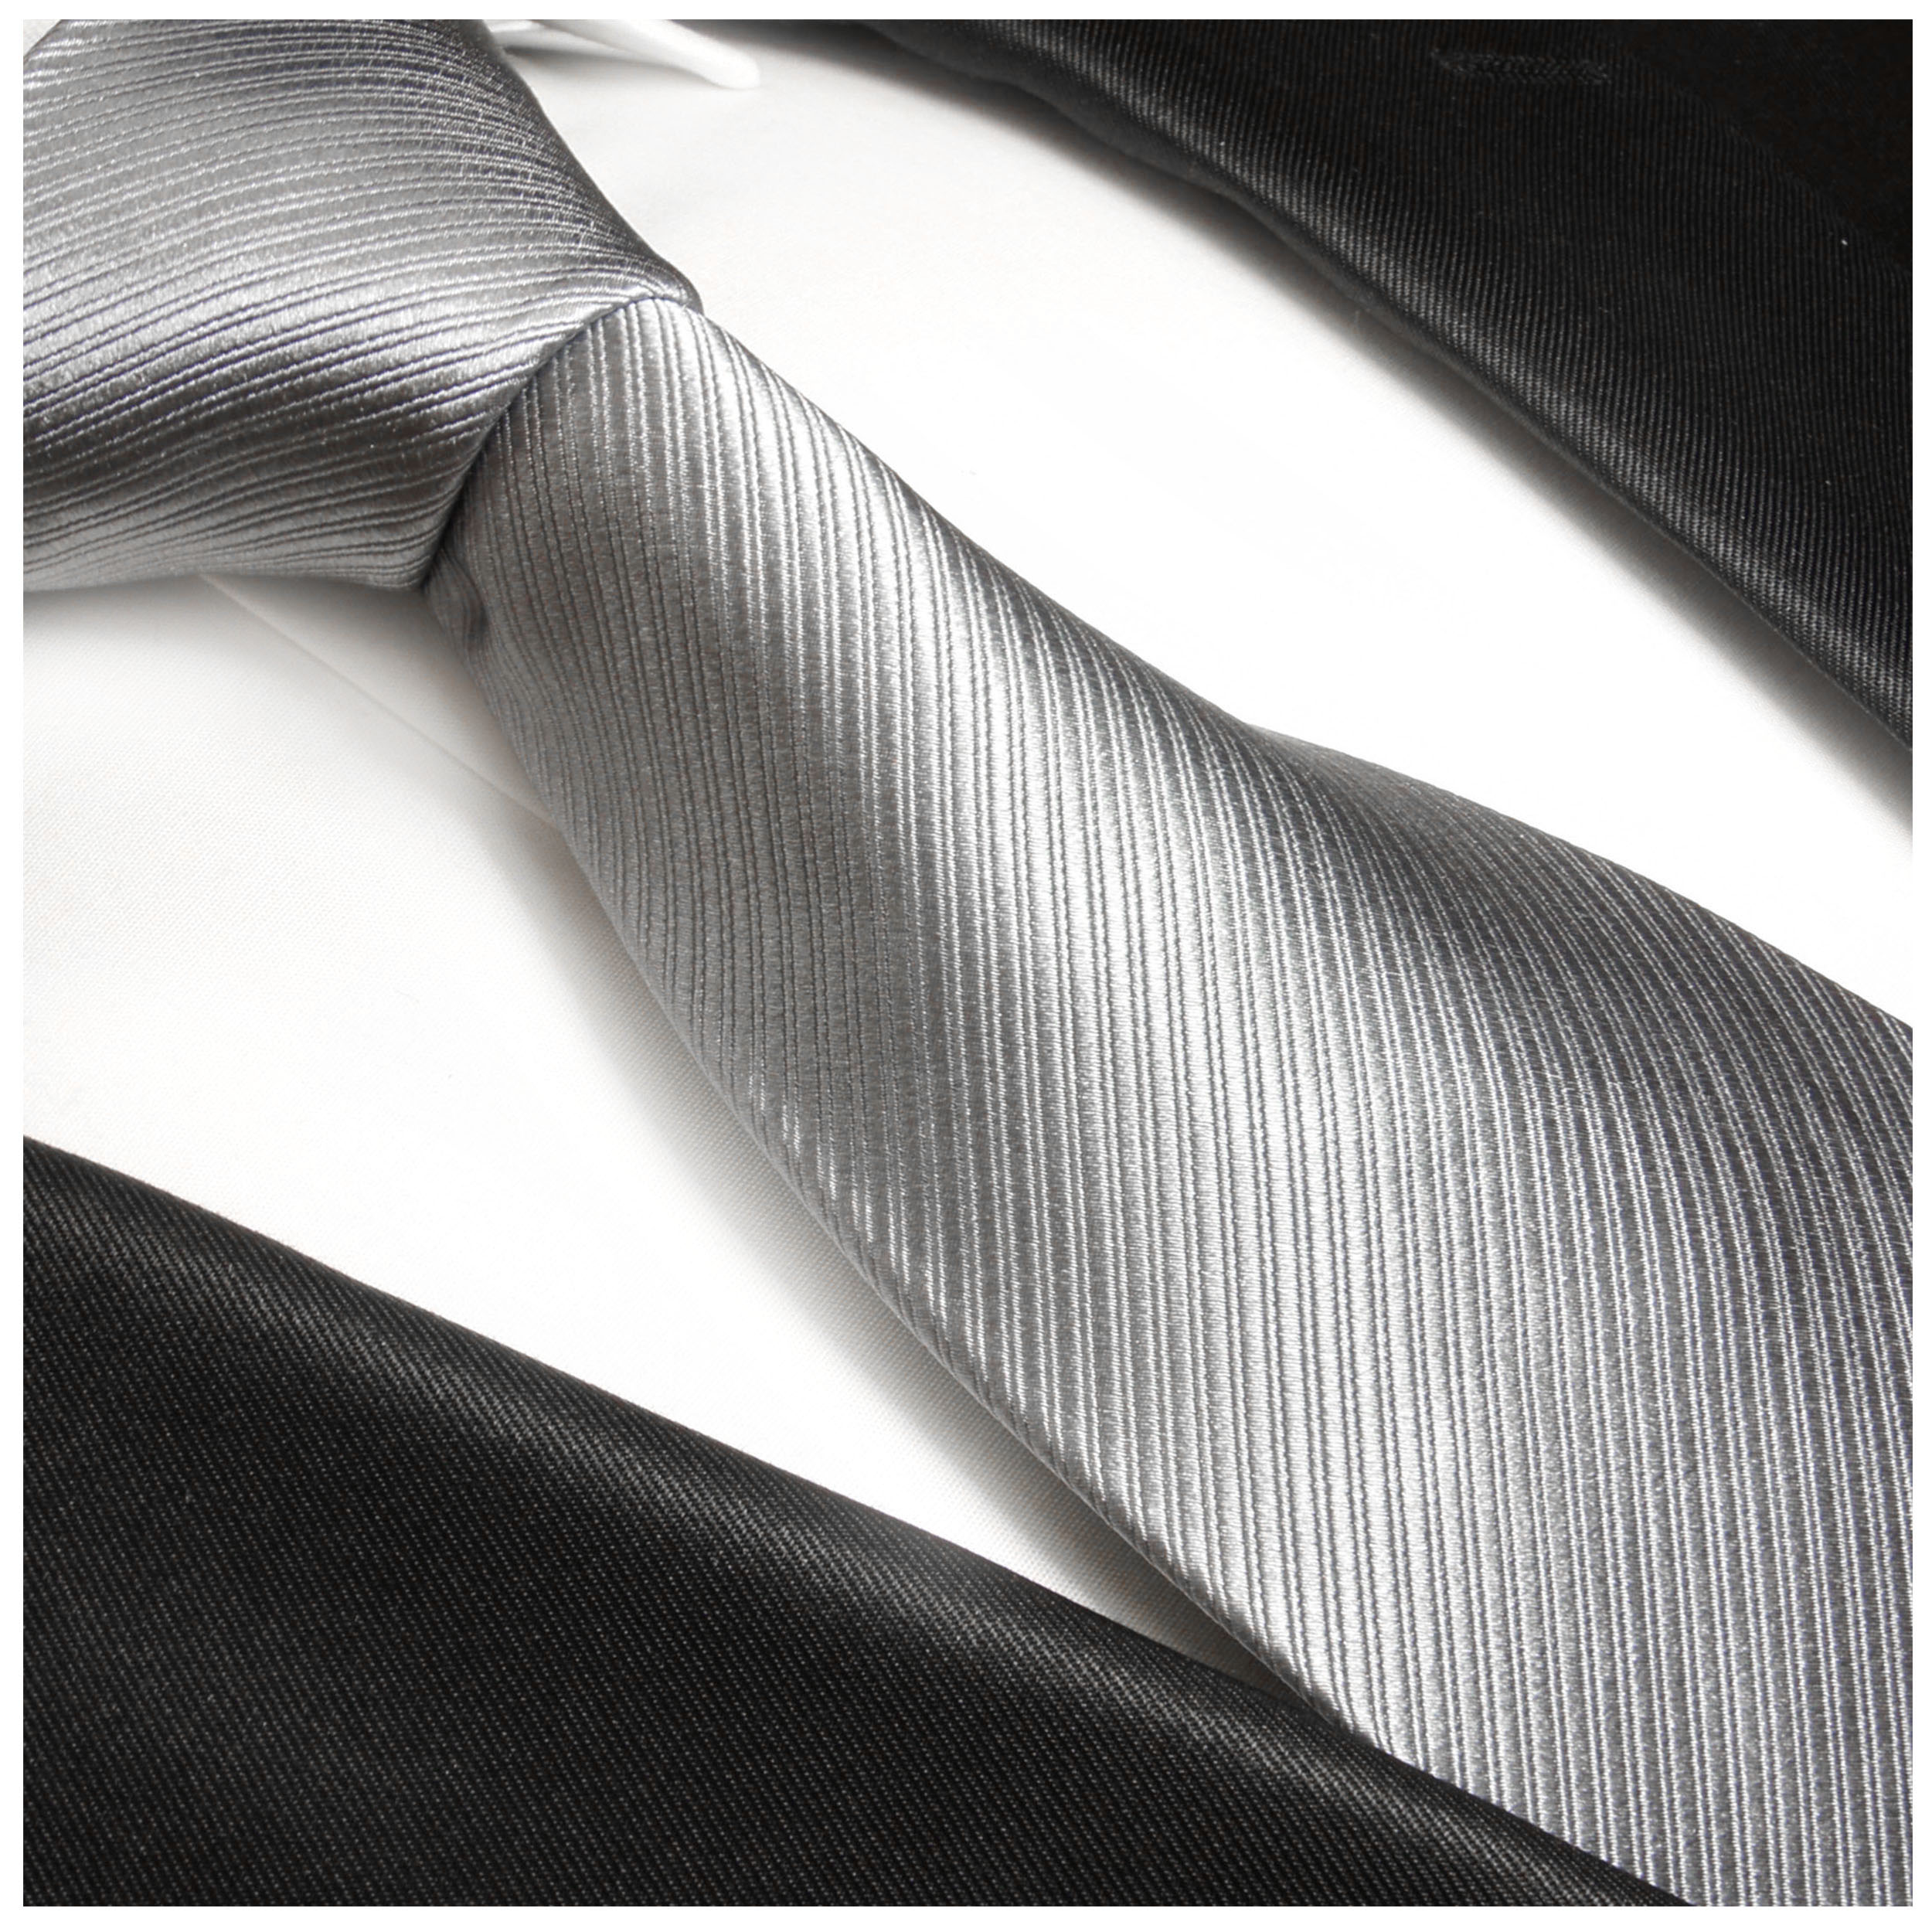 6cd40be5a294 Silver tie necktie silk solid 977   ORDER NOW - Paul Malone Shop